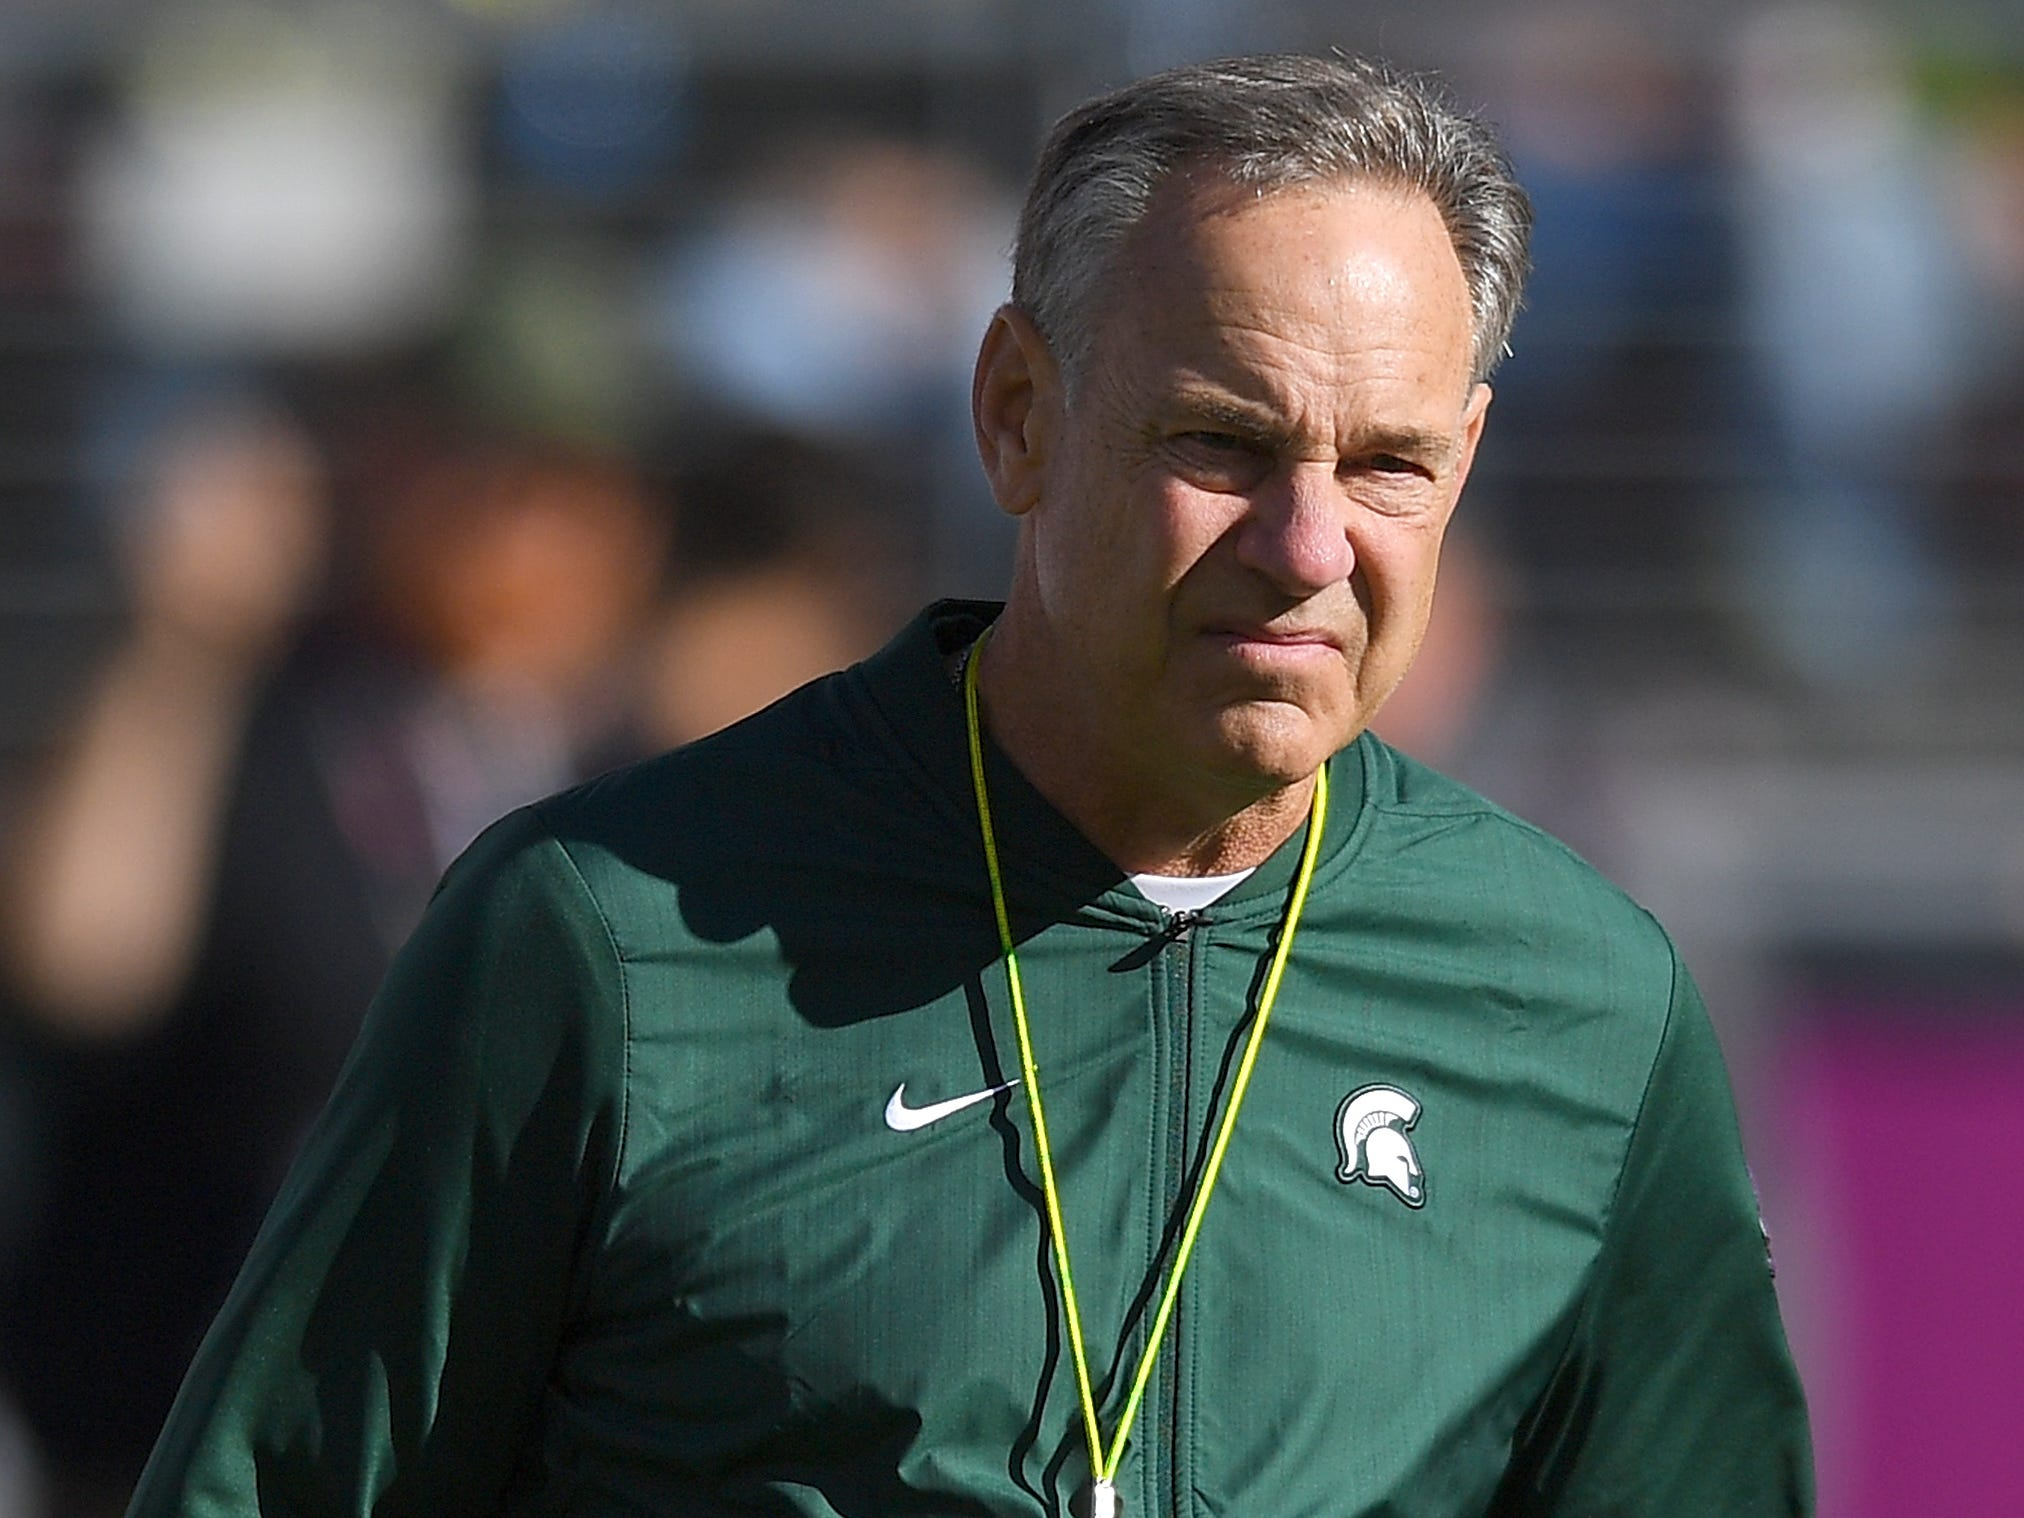 Head coach Mark Dantonio of the Michigan State Spartans looks on while his team warms up prior to the start of the Redbox Bowl against the Oregon Ducks at Levi's Stadium on December 31, 2018 in Santa Clara, California.